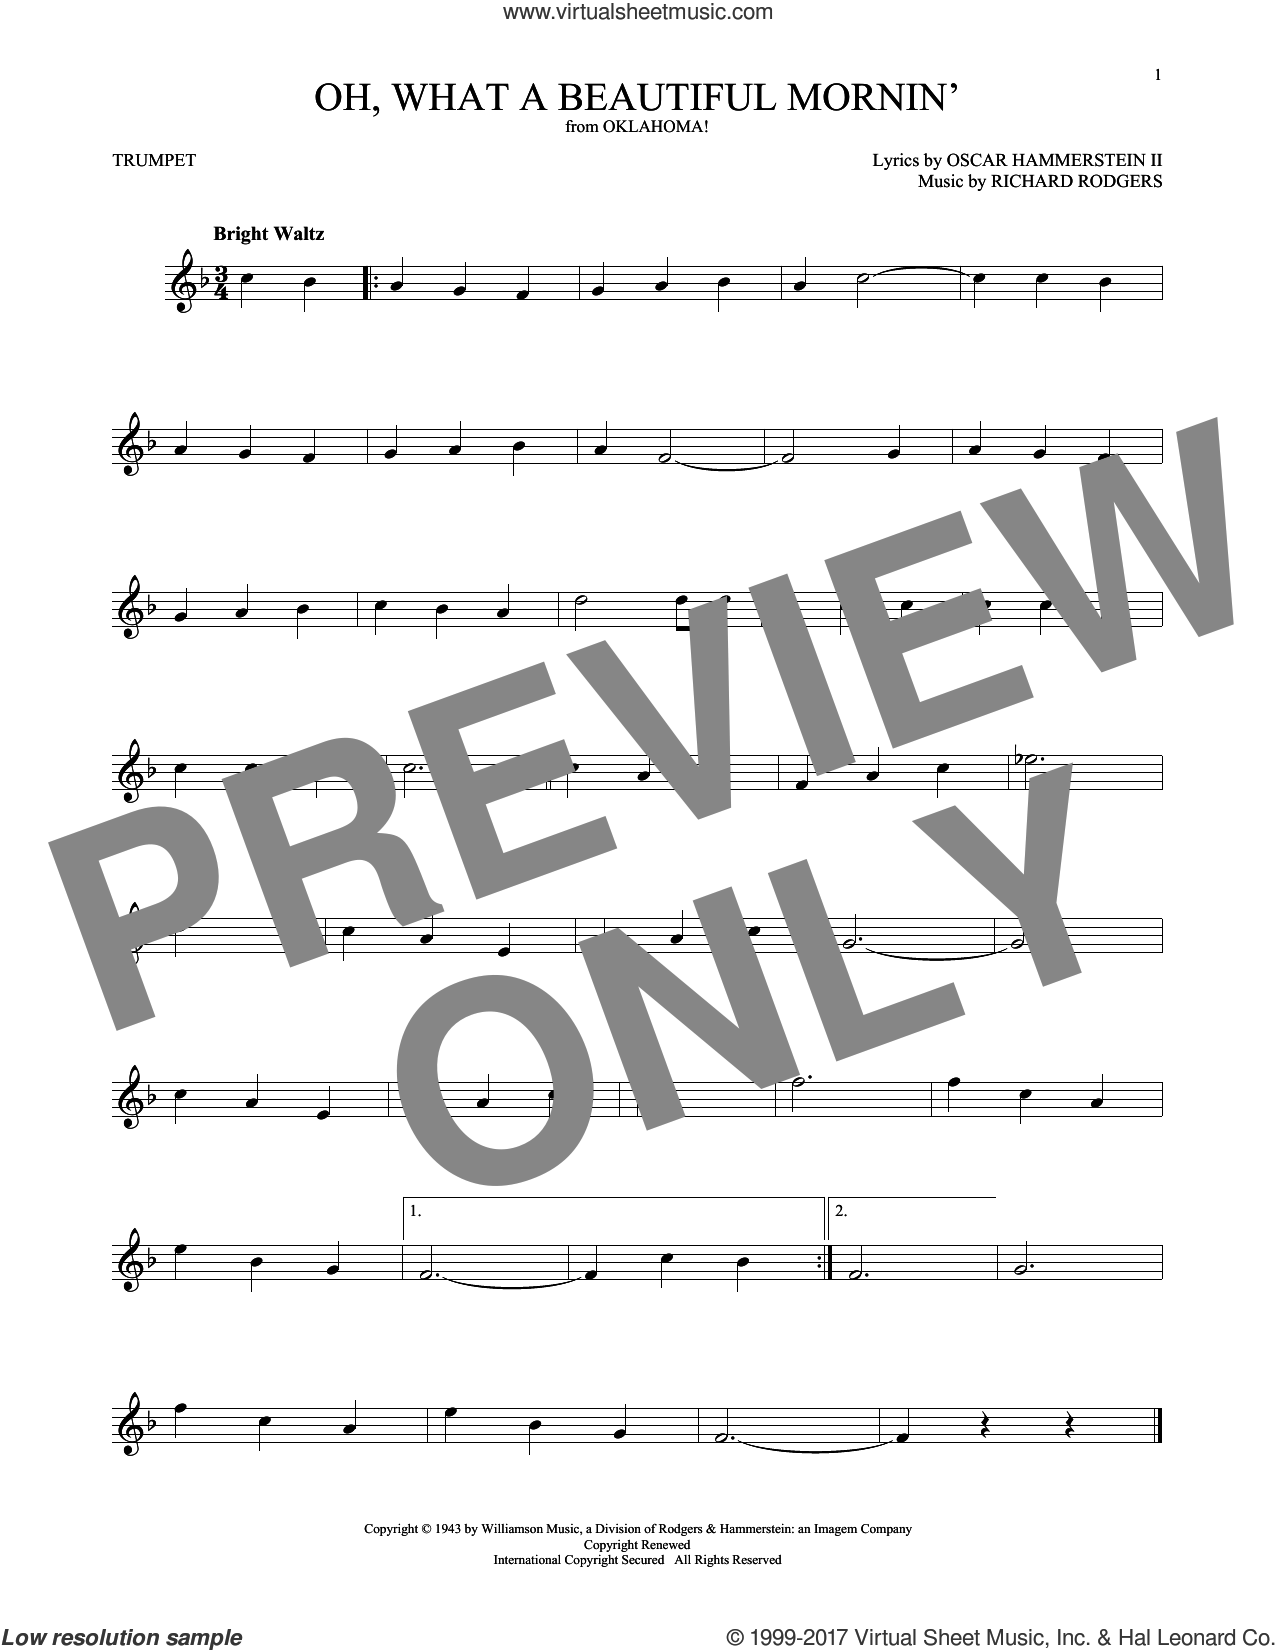 Oh, What A Beautiful Mornin' (from Oklahoma!) sheet music for trumpet solo by Rodgers & Hammerstein, Oscar II Hammerstein and Richard Rodgers, intermediate skill level